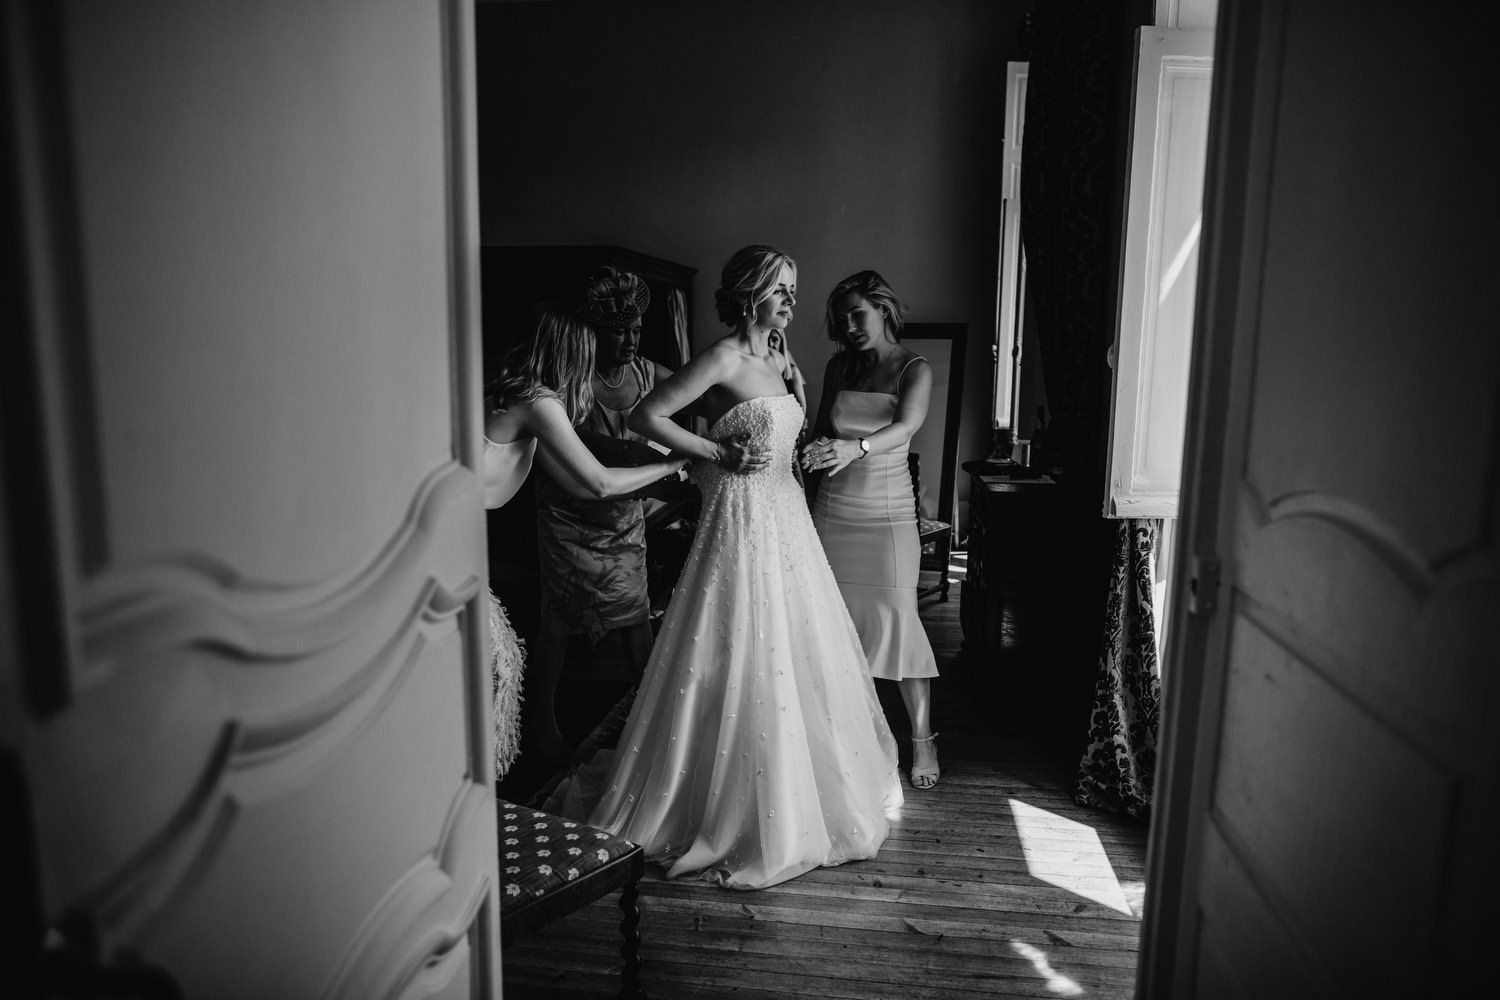 window lights up bride as she puts dress on